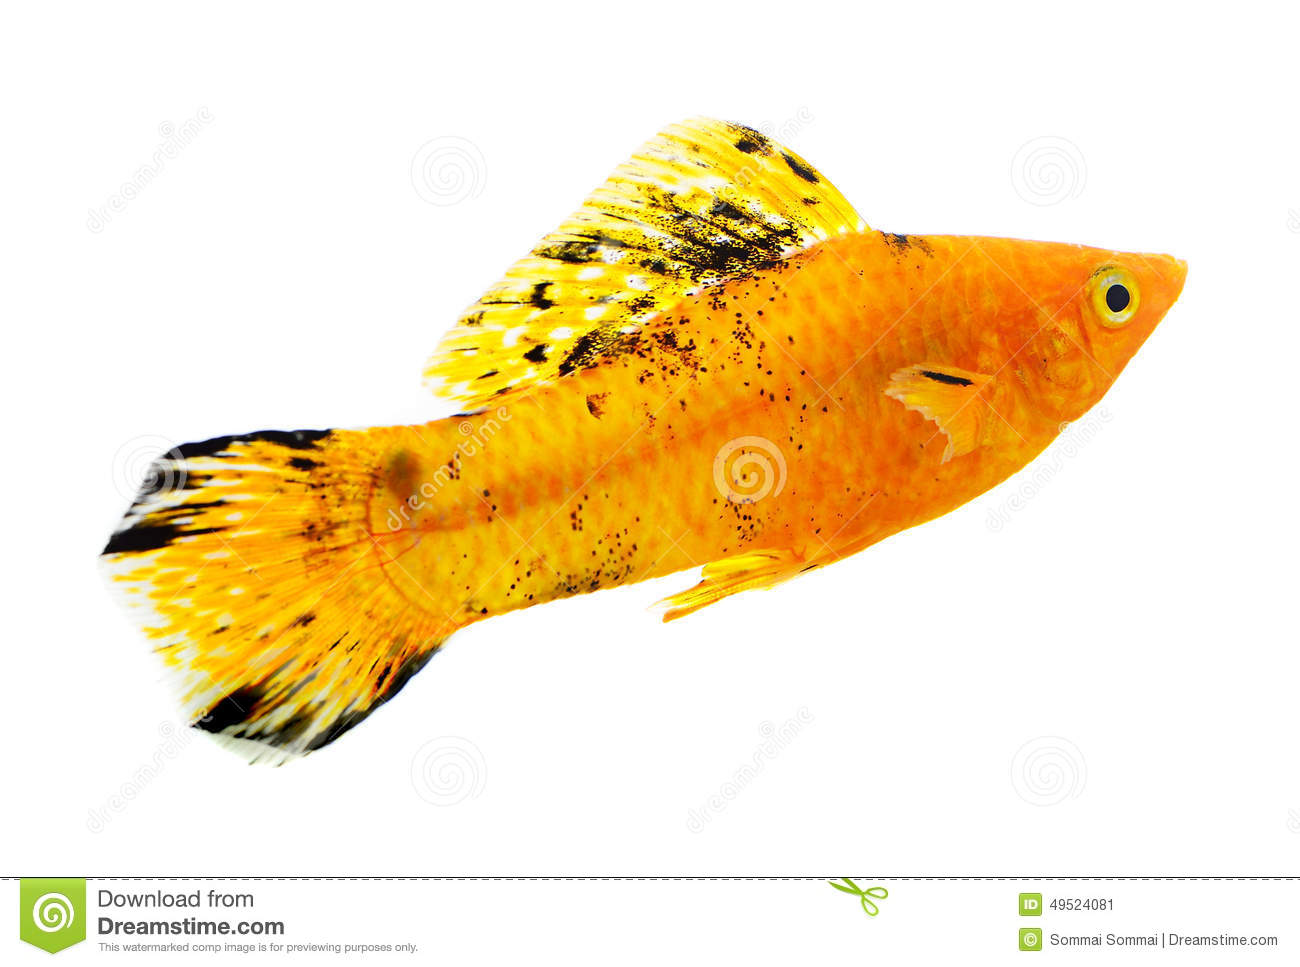 Molly fish on white background